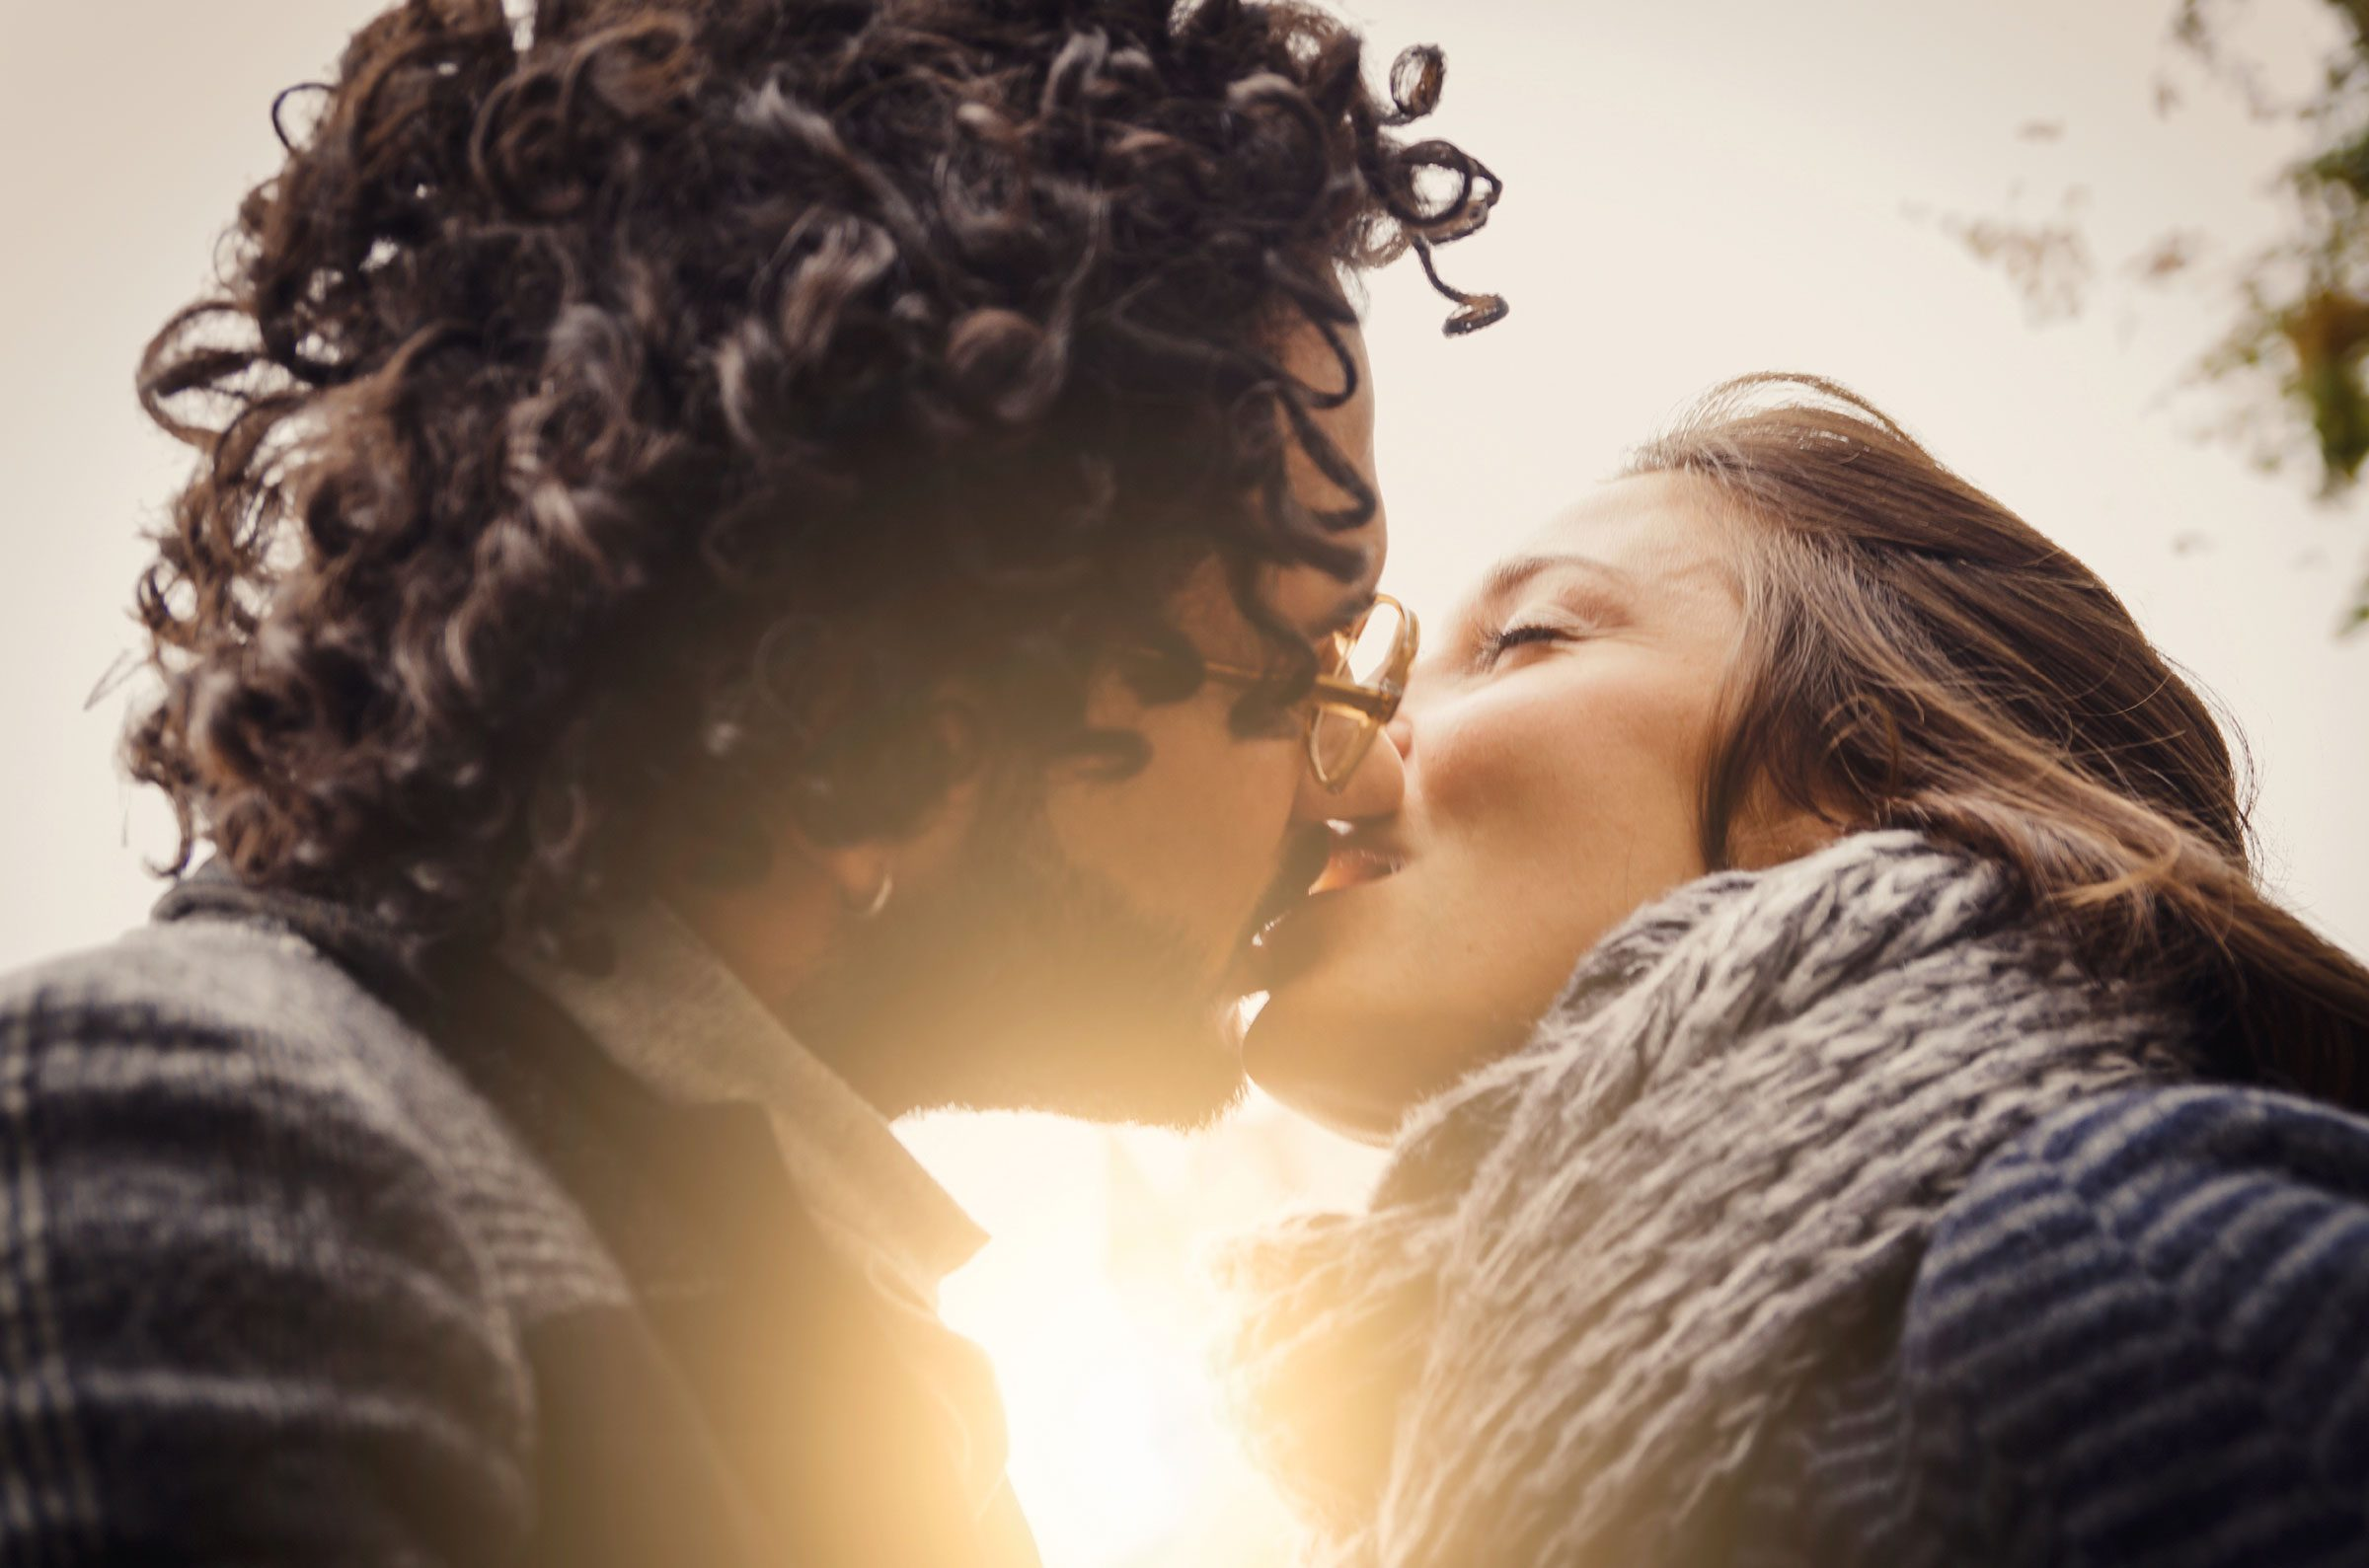 3. Kissing keeps facial muscles strong.